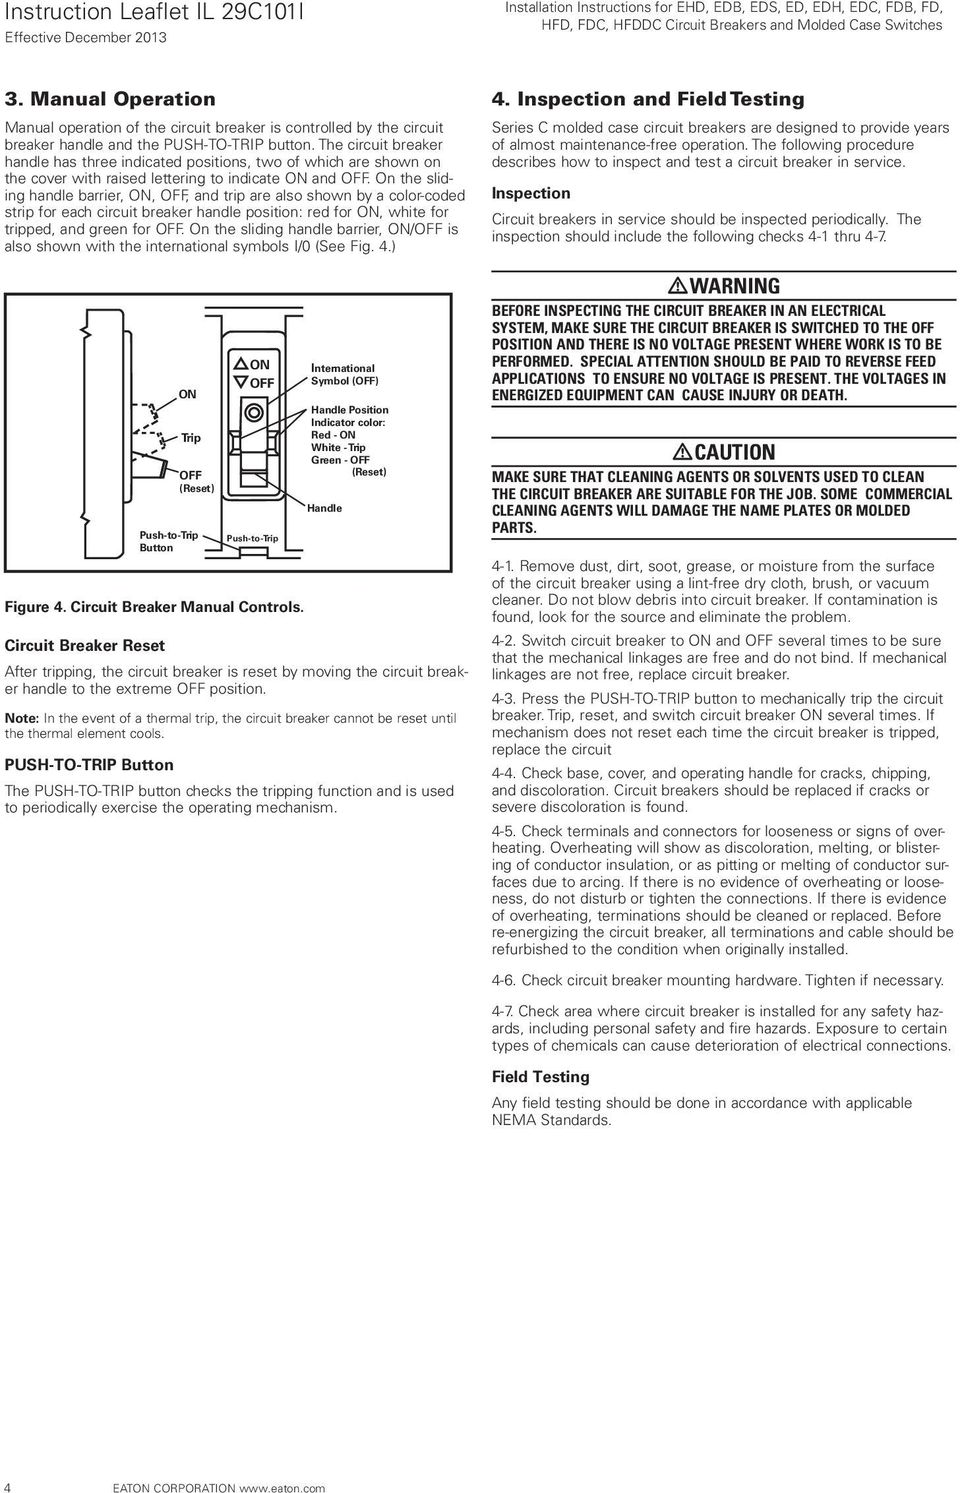 Installation Instructions For Ehd Edb Eds Ed Edh Edc Fdb Fd Circuit Breakers Gt Id Series Earth Leakage Breaker On The Sliding Handle Barrier Off And Trip Are Also Shown By